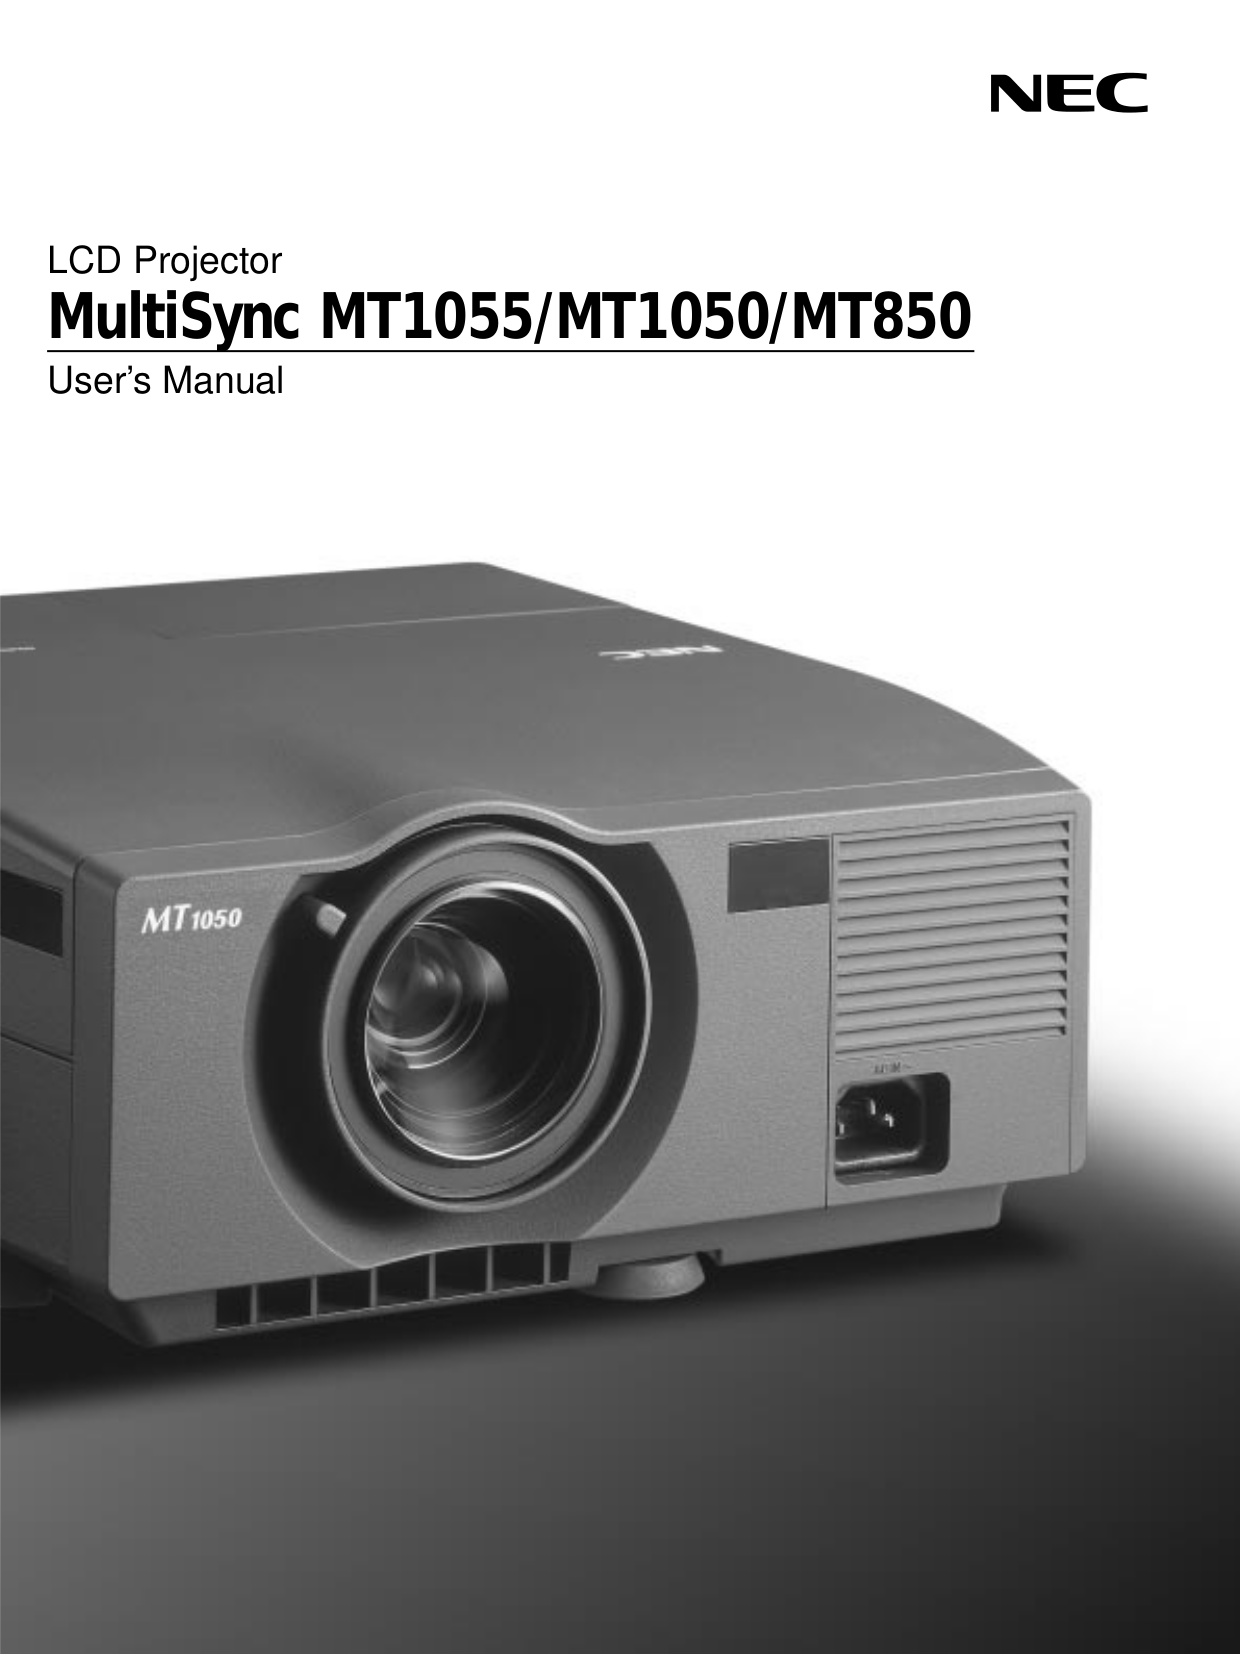 download free pdf for nec mt1050 projector manual rh umlib com NEC VT 47 Projector Manual NEC Projectors Troubleshooting